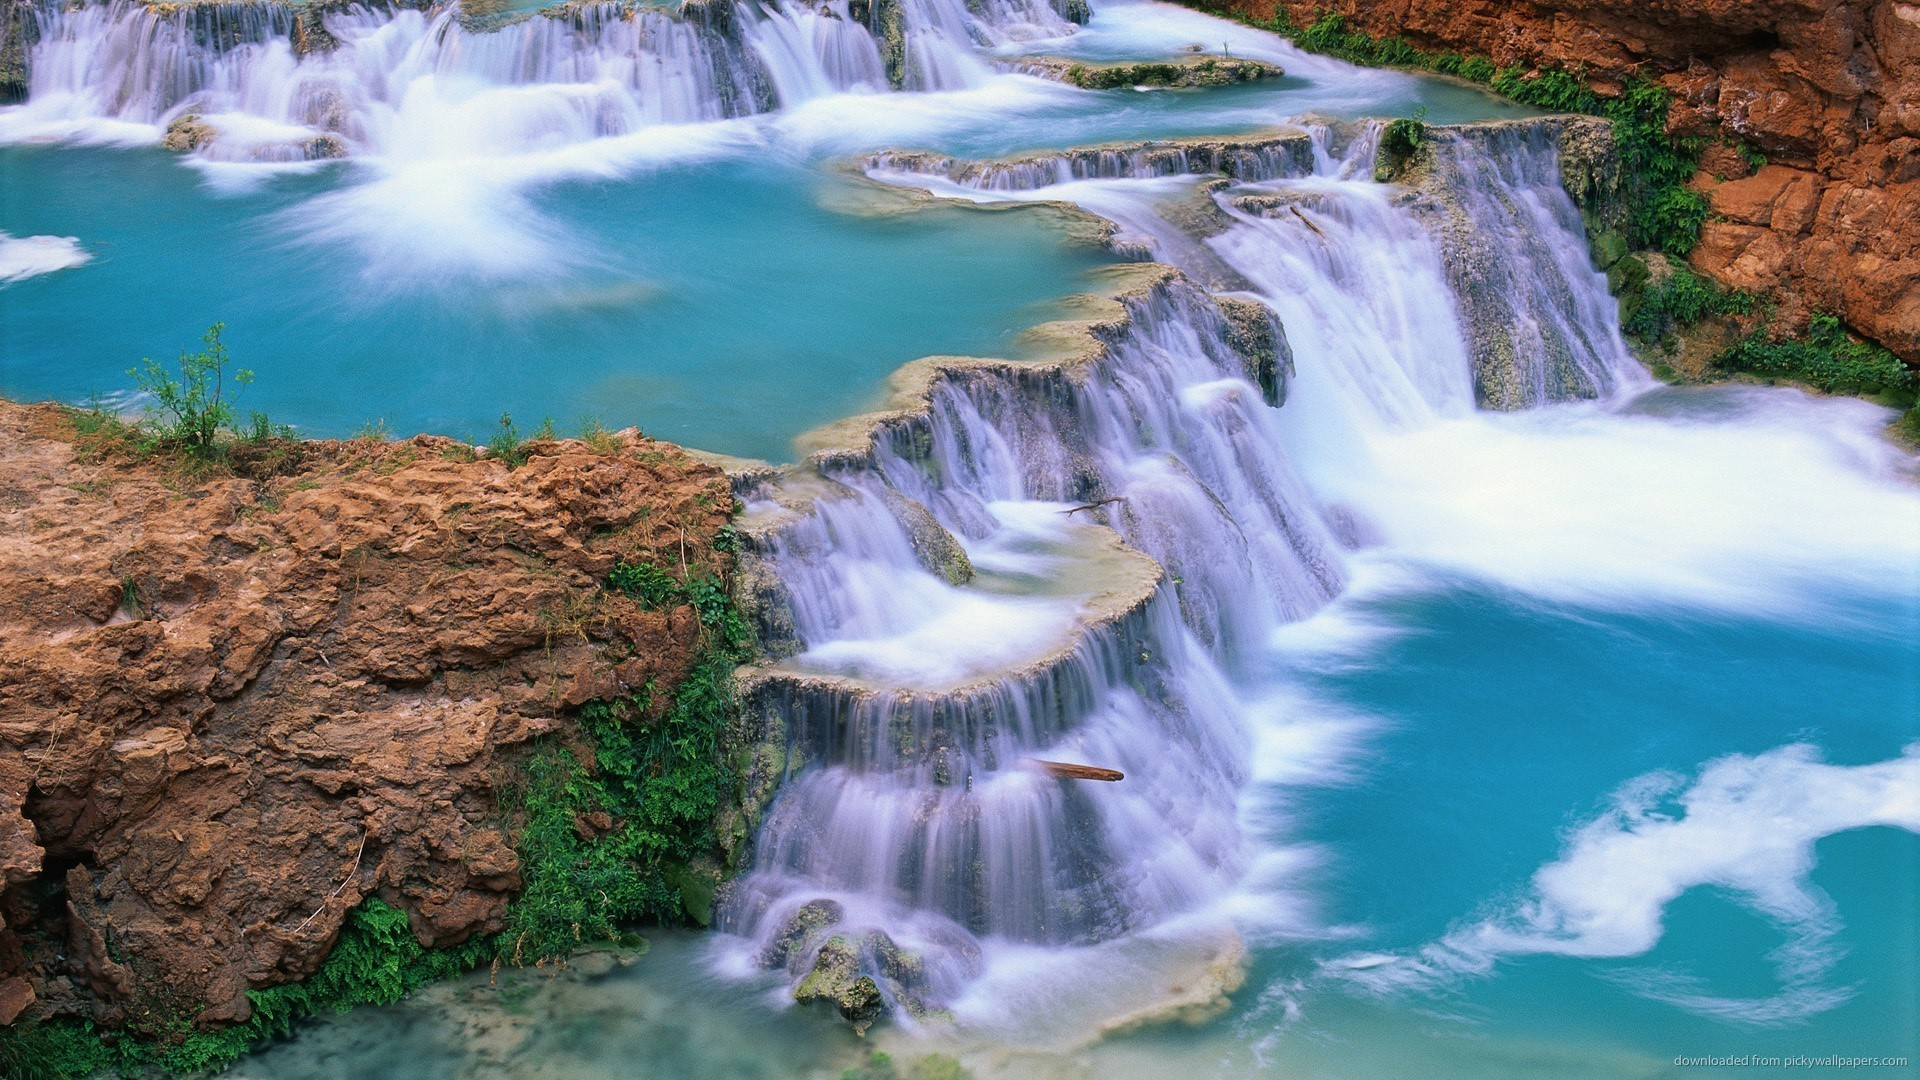 Gorgeous cascade waterfalls picture